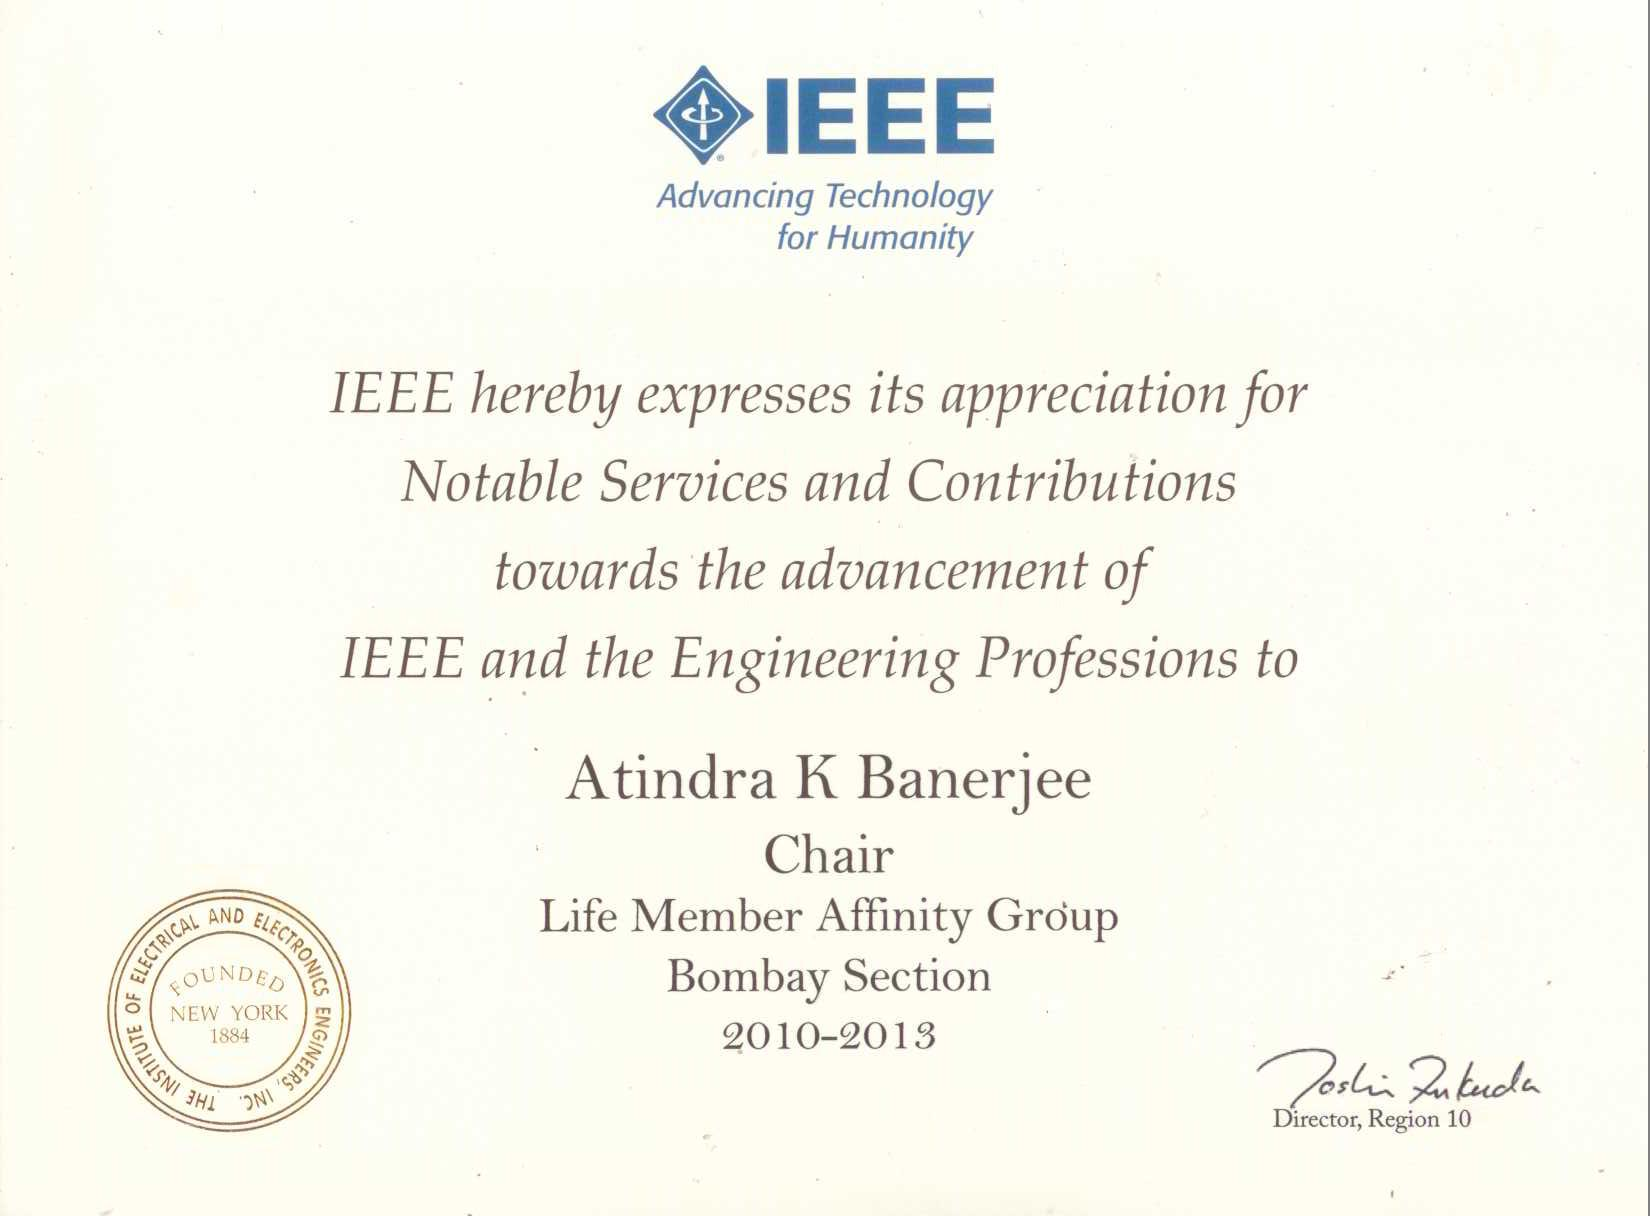 Ieee bombay section volunteer recognition awards volunteer recognition awards xflitez Gallery